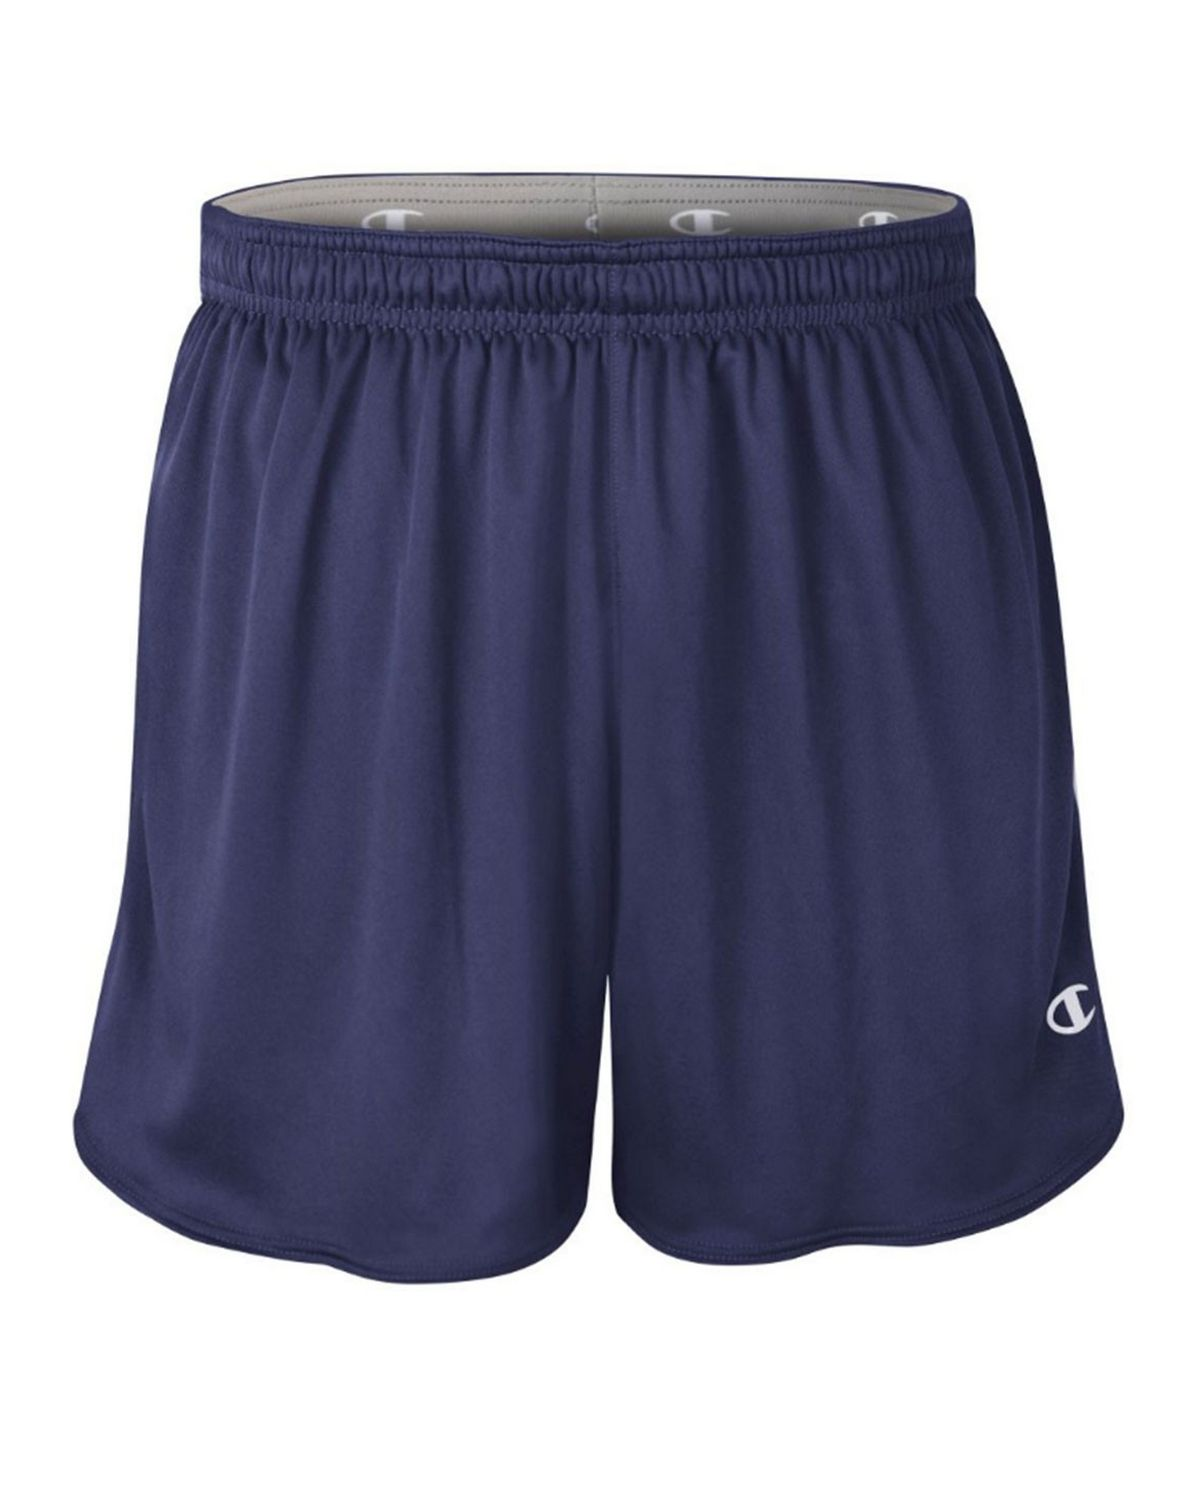 Champion T709 Mens Raceday Short - Athletic Navy/White - XL T709